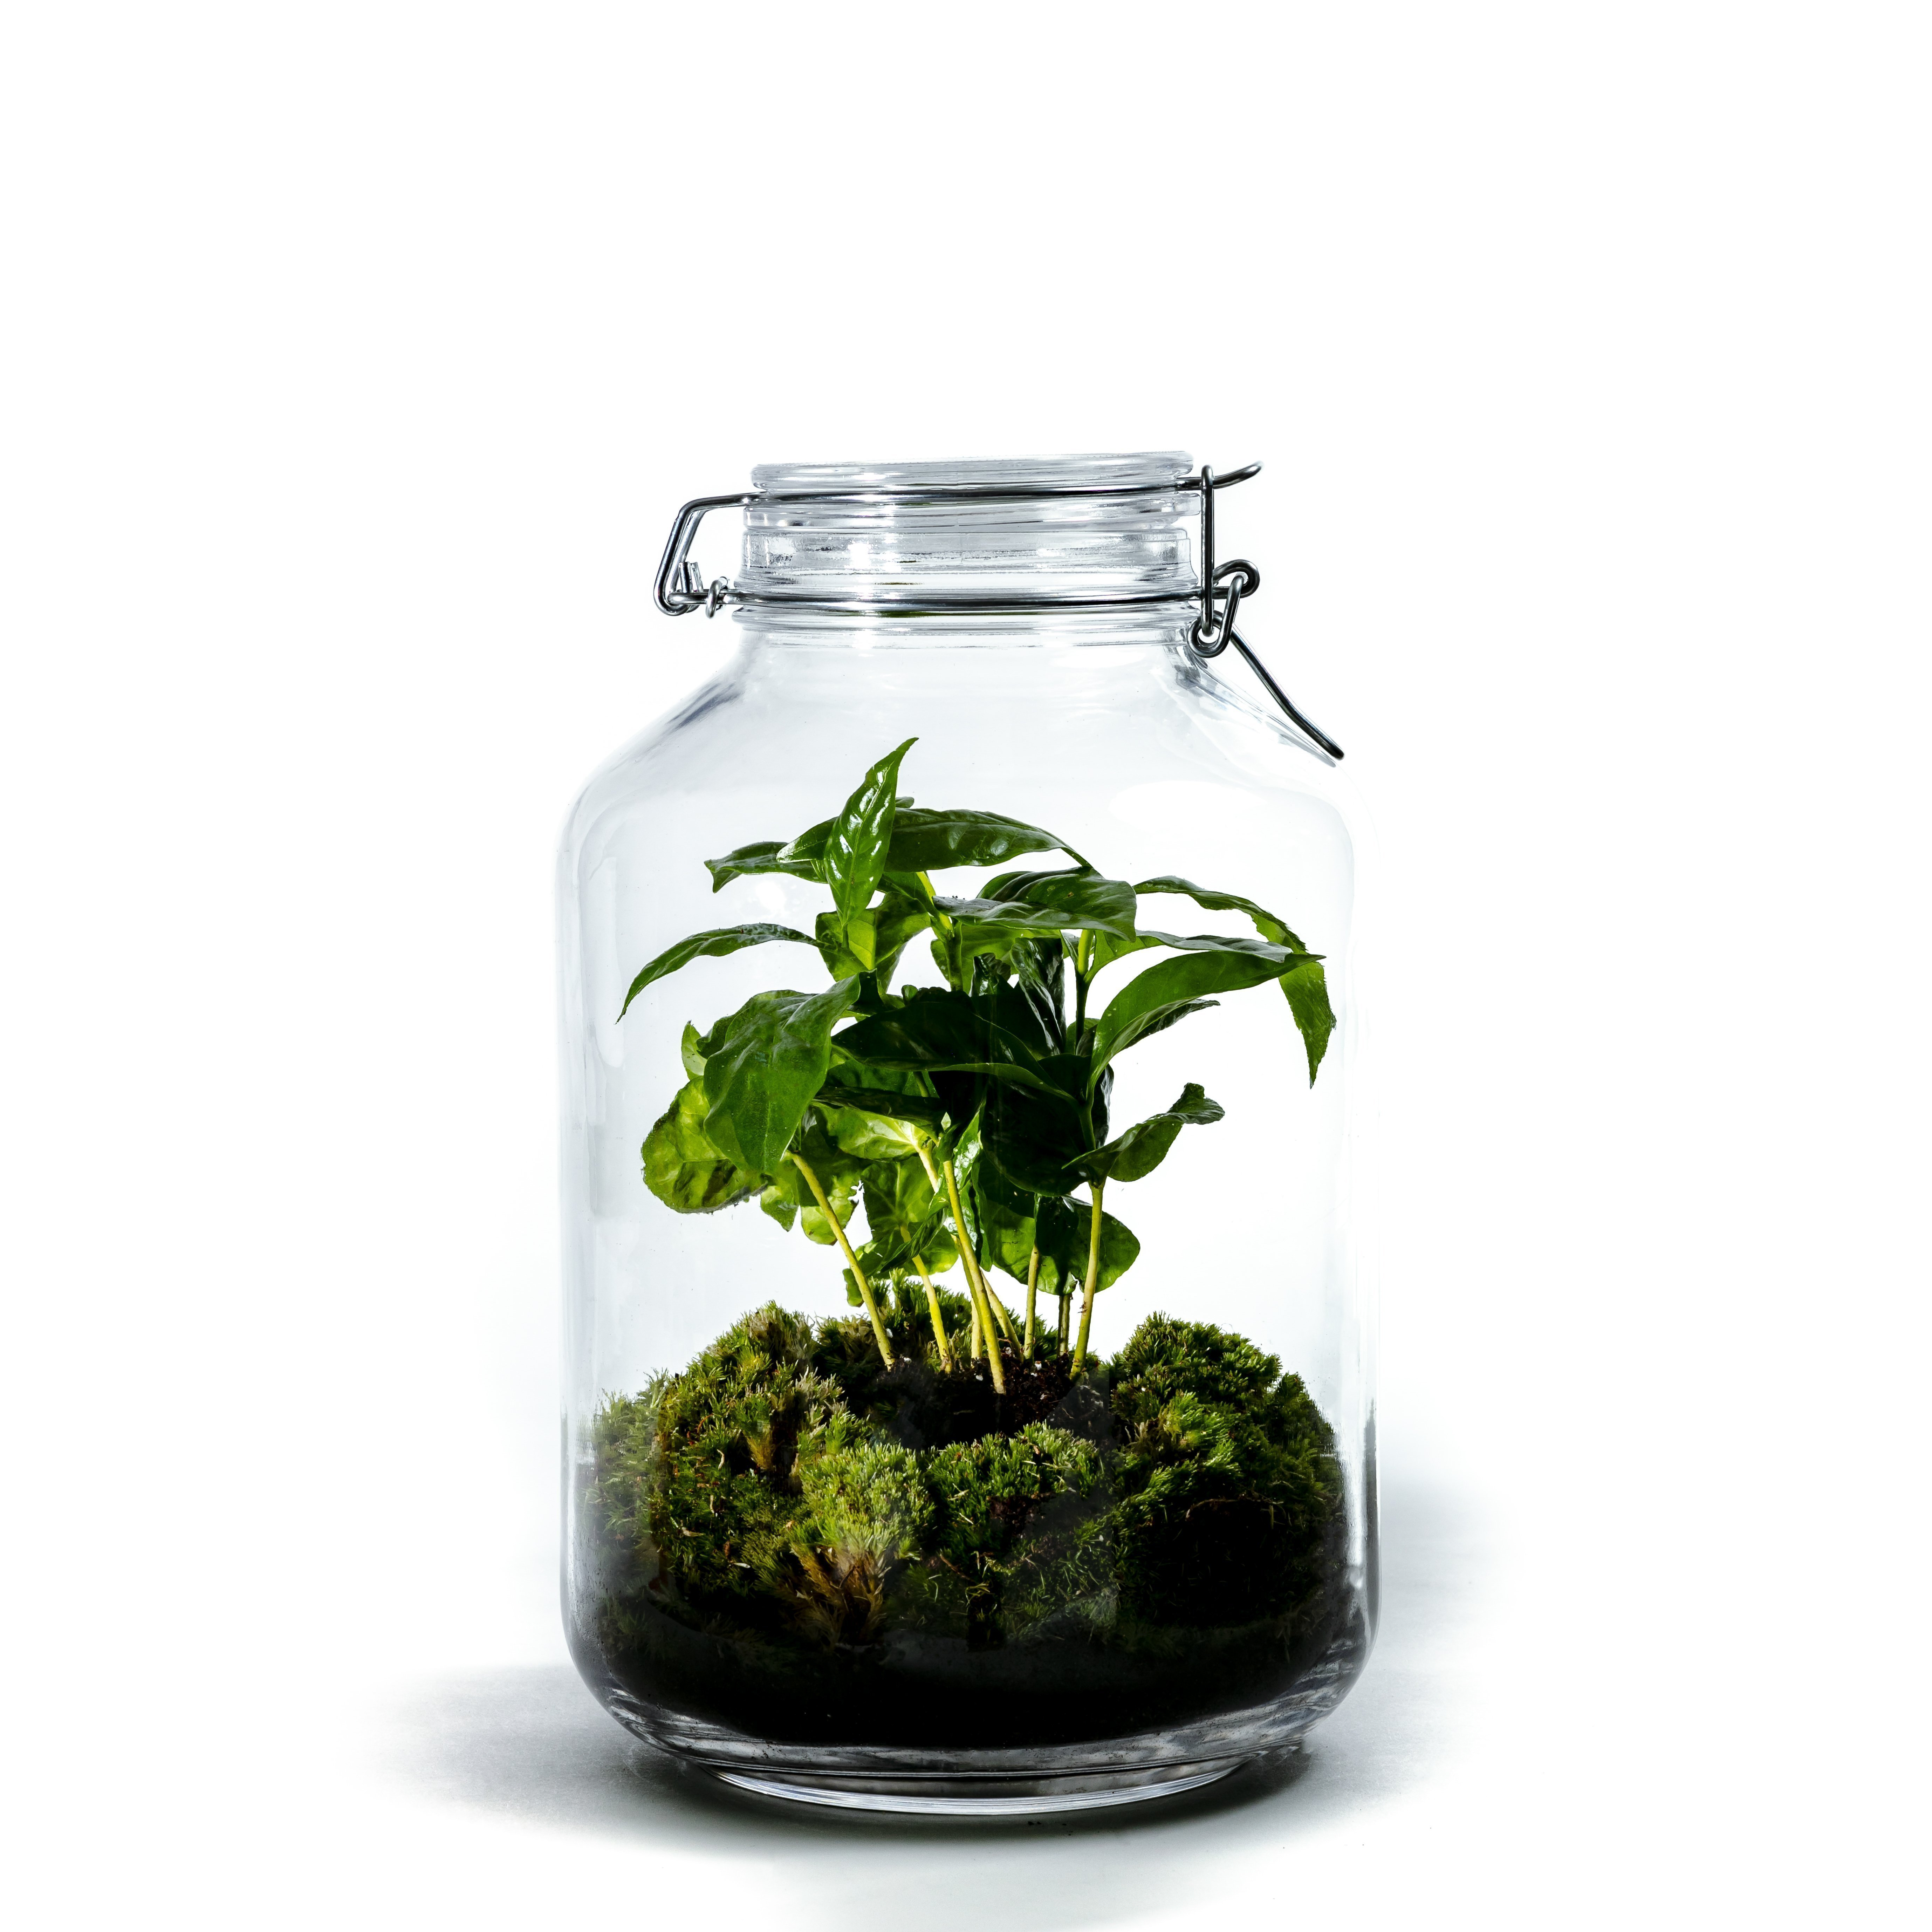 DIY Sustainable Garden in a Bottle from Botanicly: Jar Large - Coffea arabica (Height: ca. 30 cm)